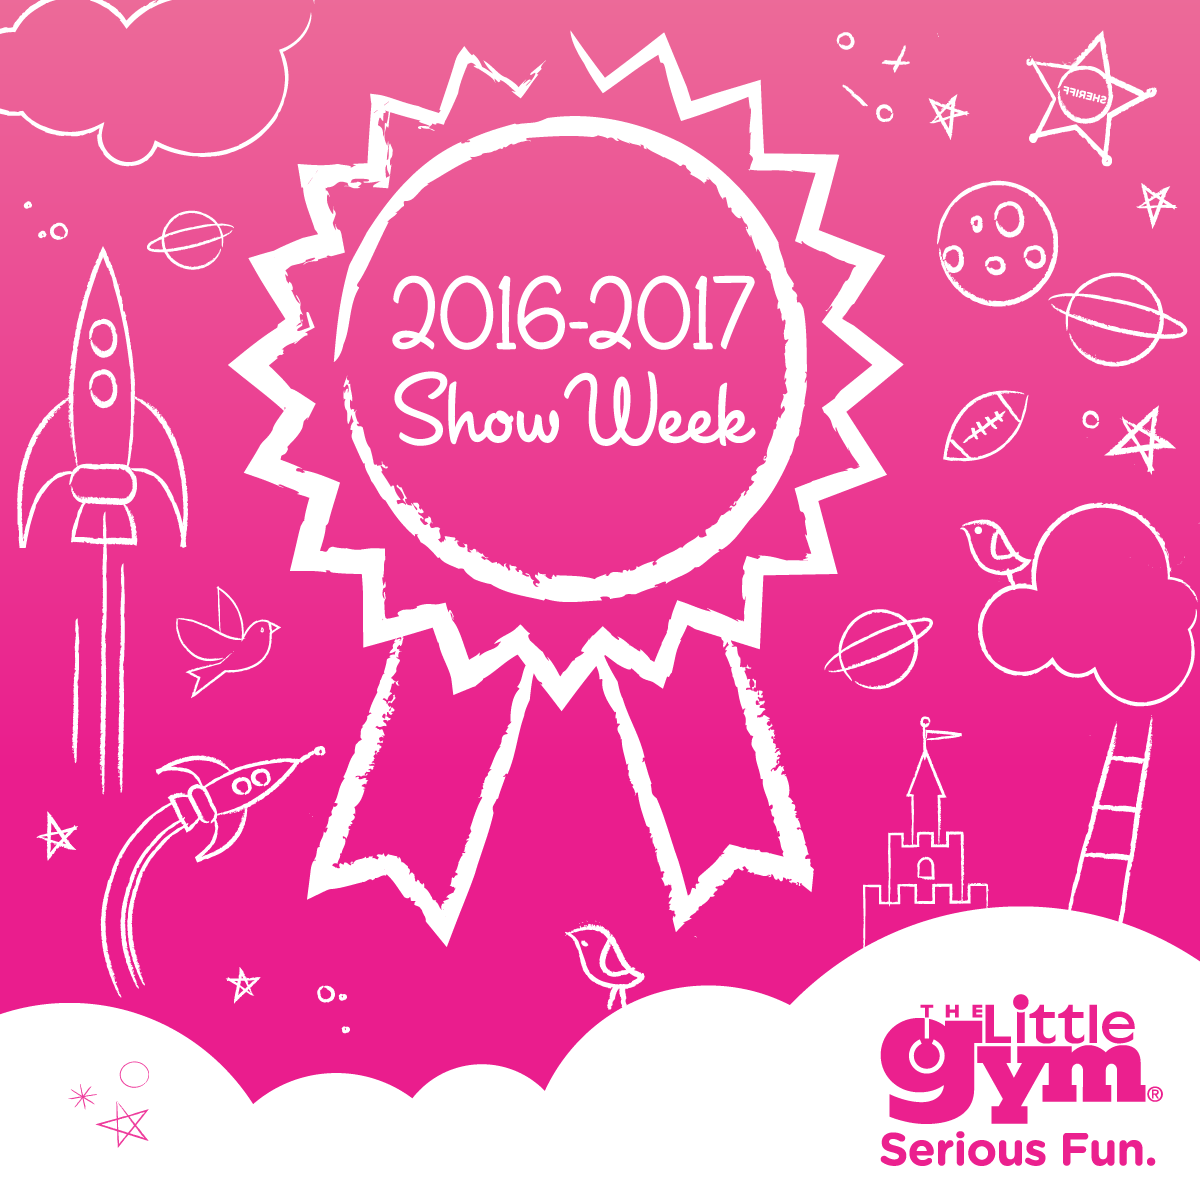 Show-week_Facebook_Image_Pink_2016-2017